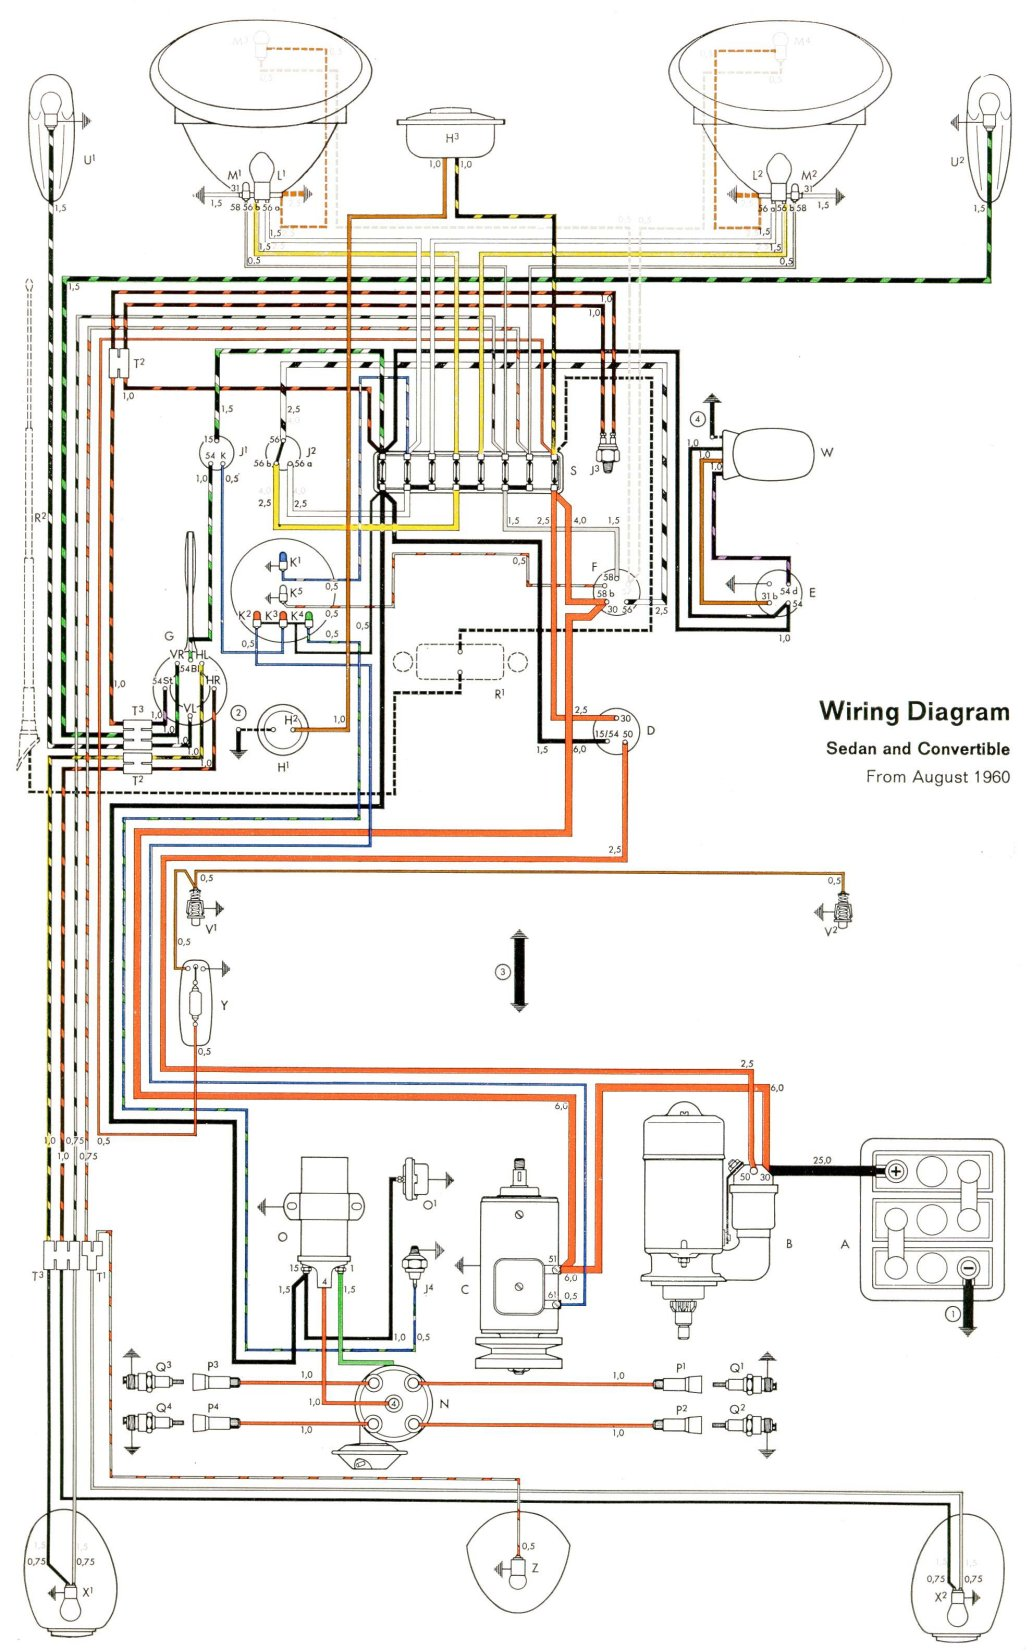 hight resolution of mga wiring diagram for 1960